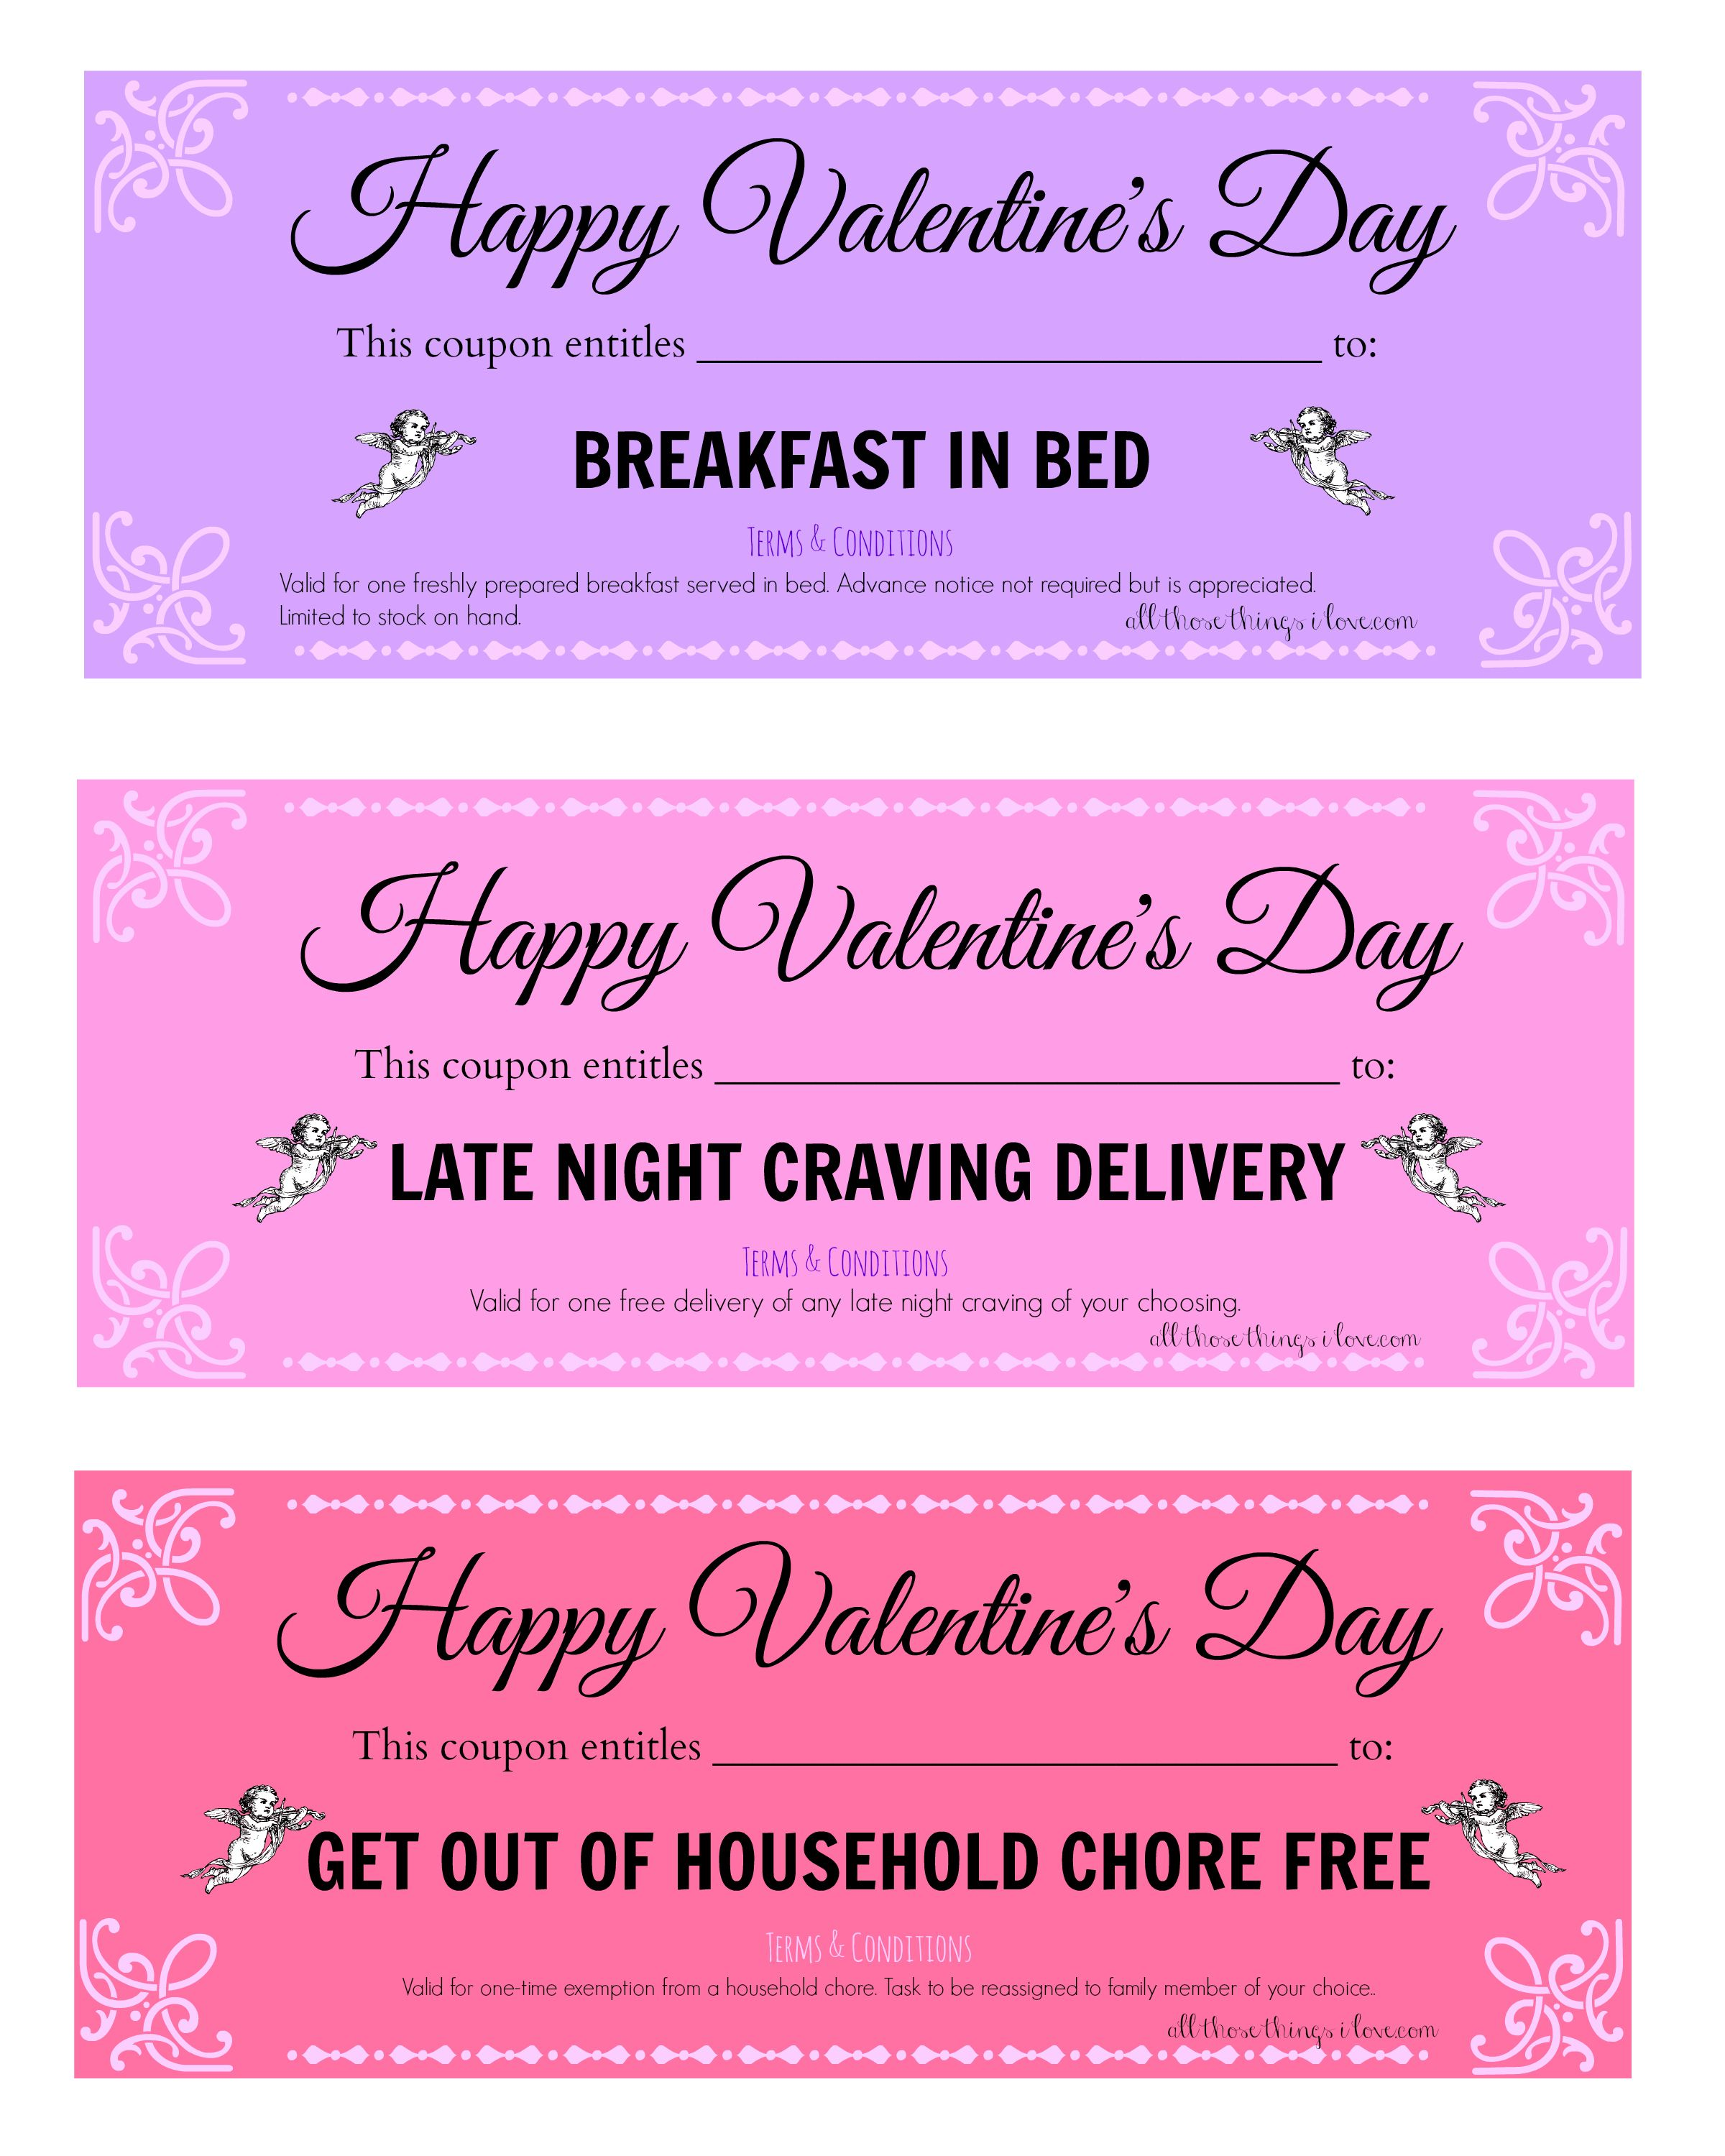 FREE Valentine's Day Printable Love Coupons | AllThoseThingsILove ...